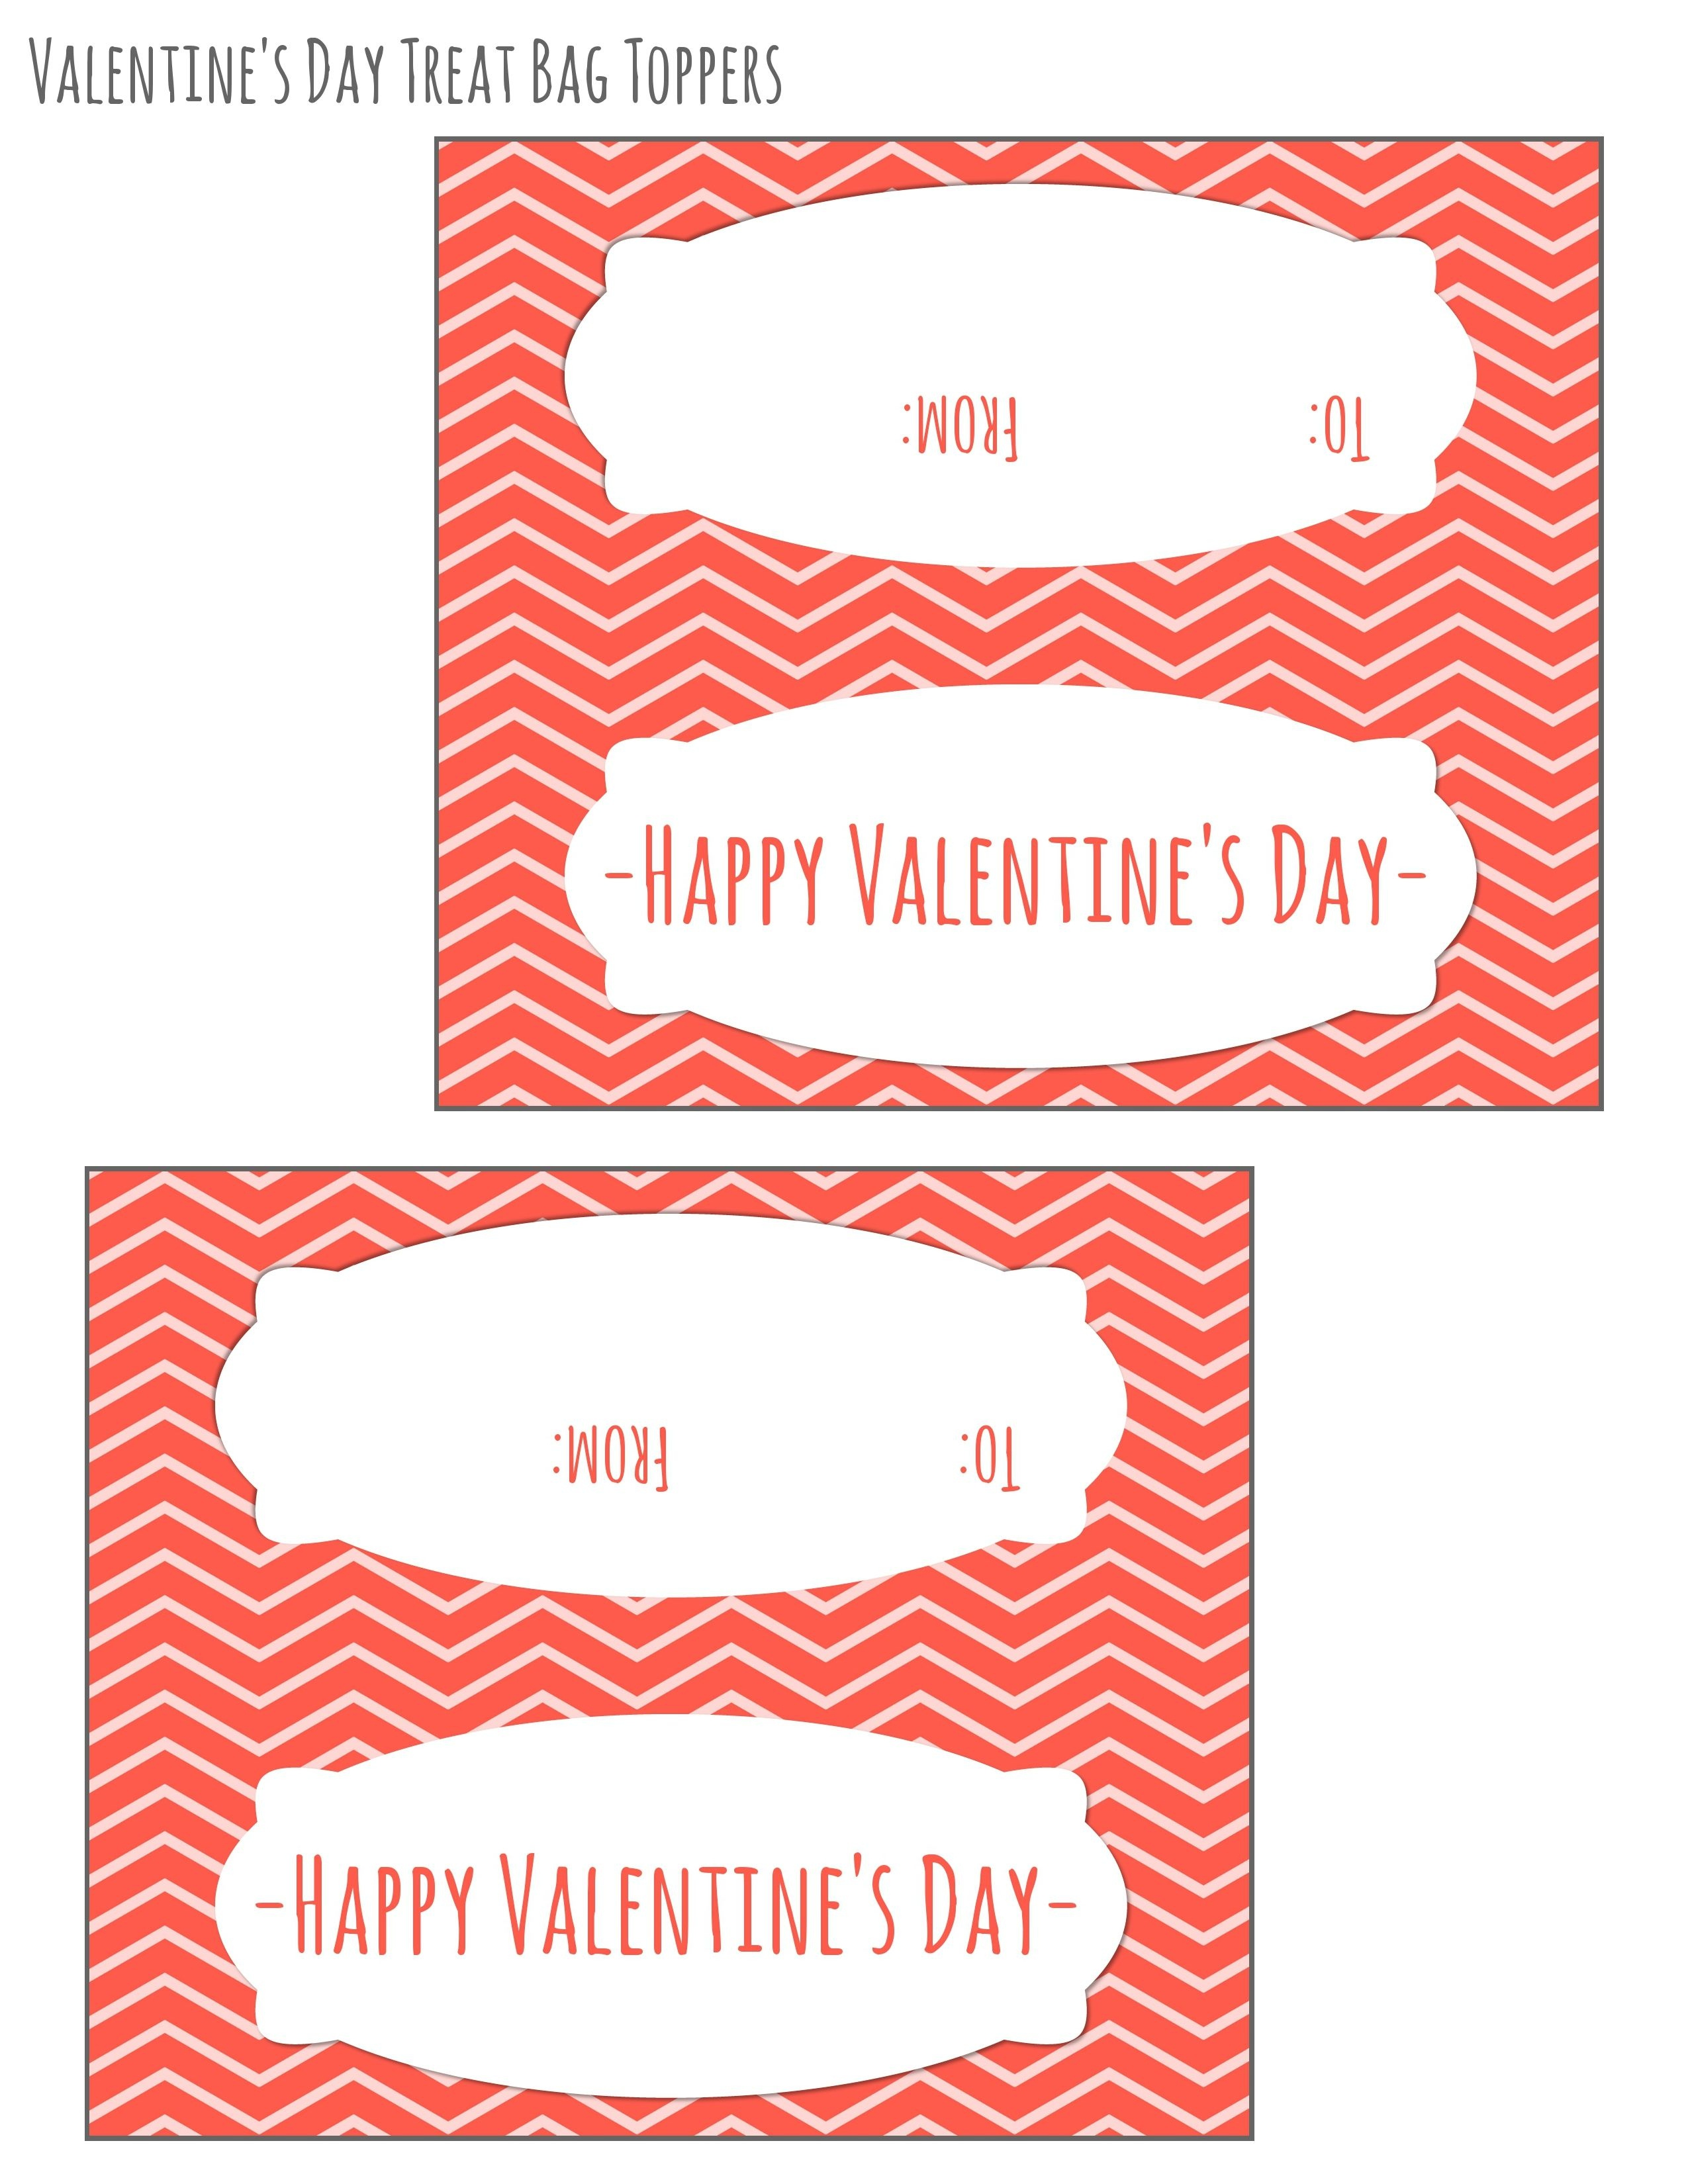 Free Printable Valentines Day Bag Toppers | February | Valentines - Free Printable Valentine's Day Stencils